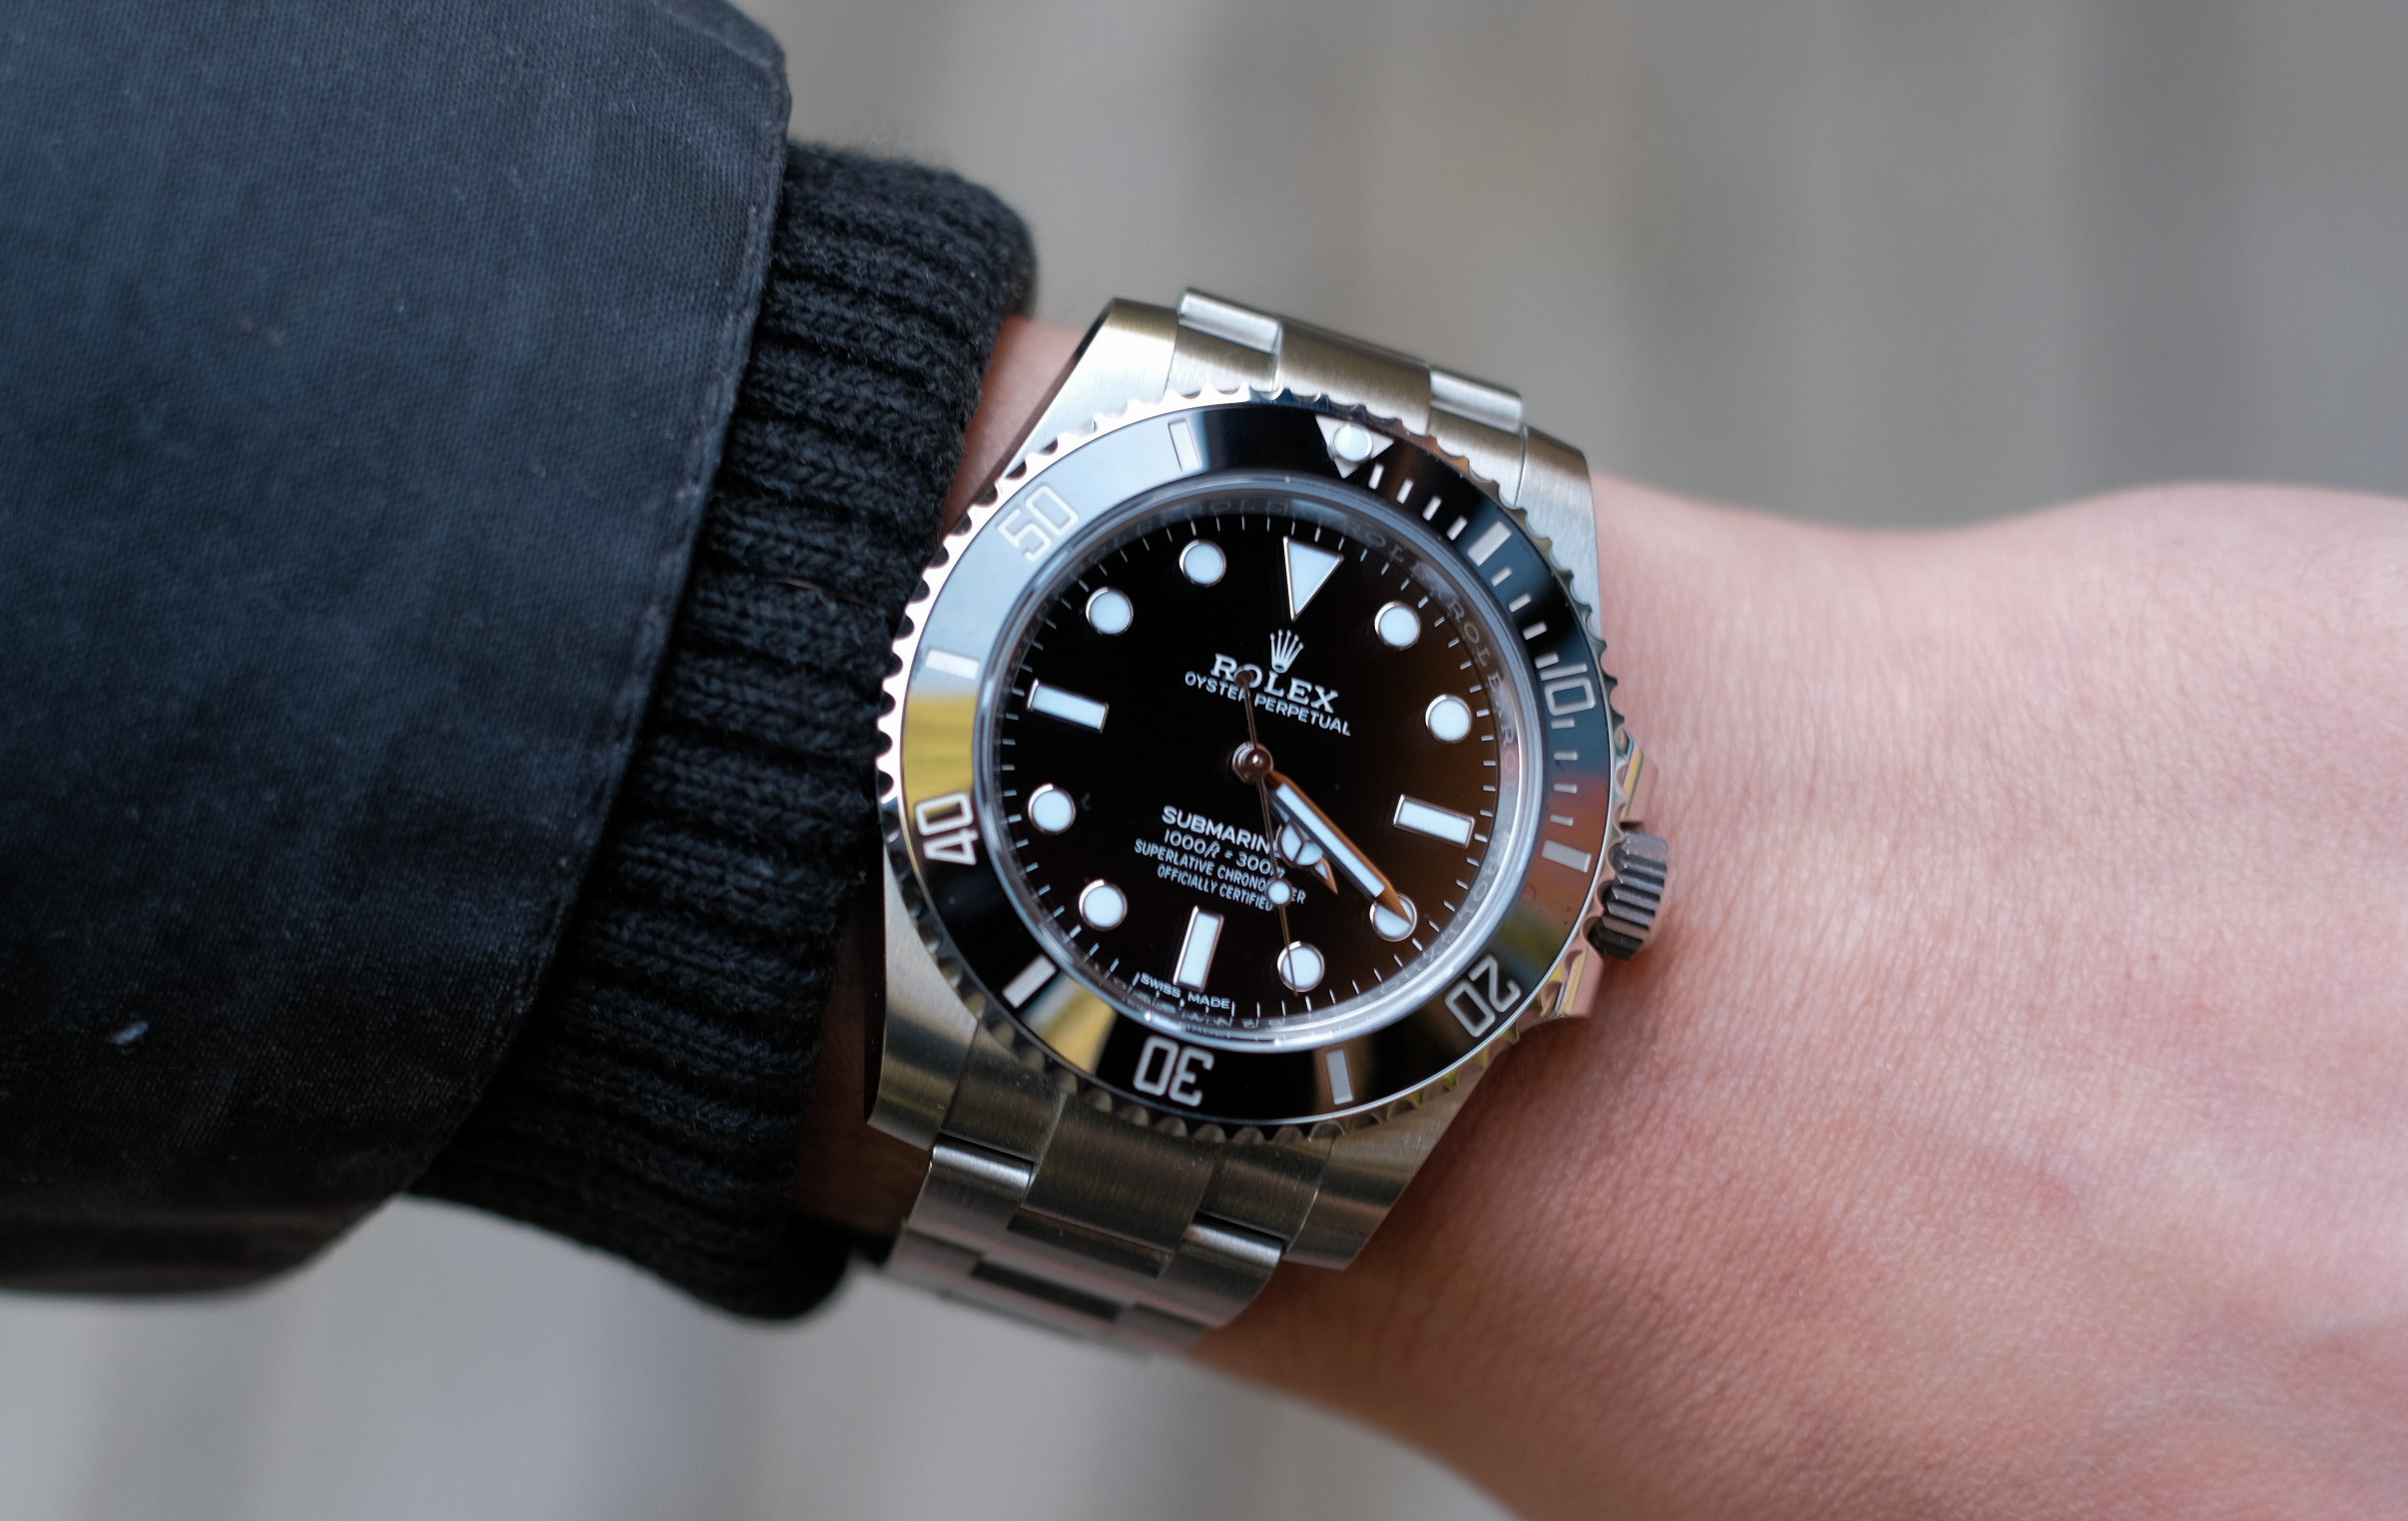 Rolex Submariner 124060 VS 114060 Sizing